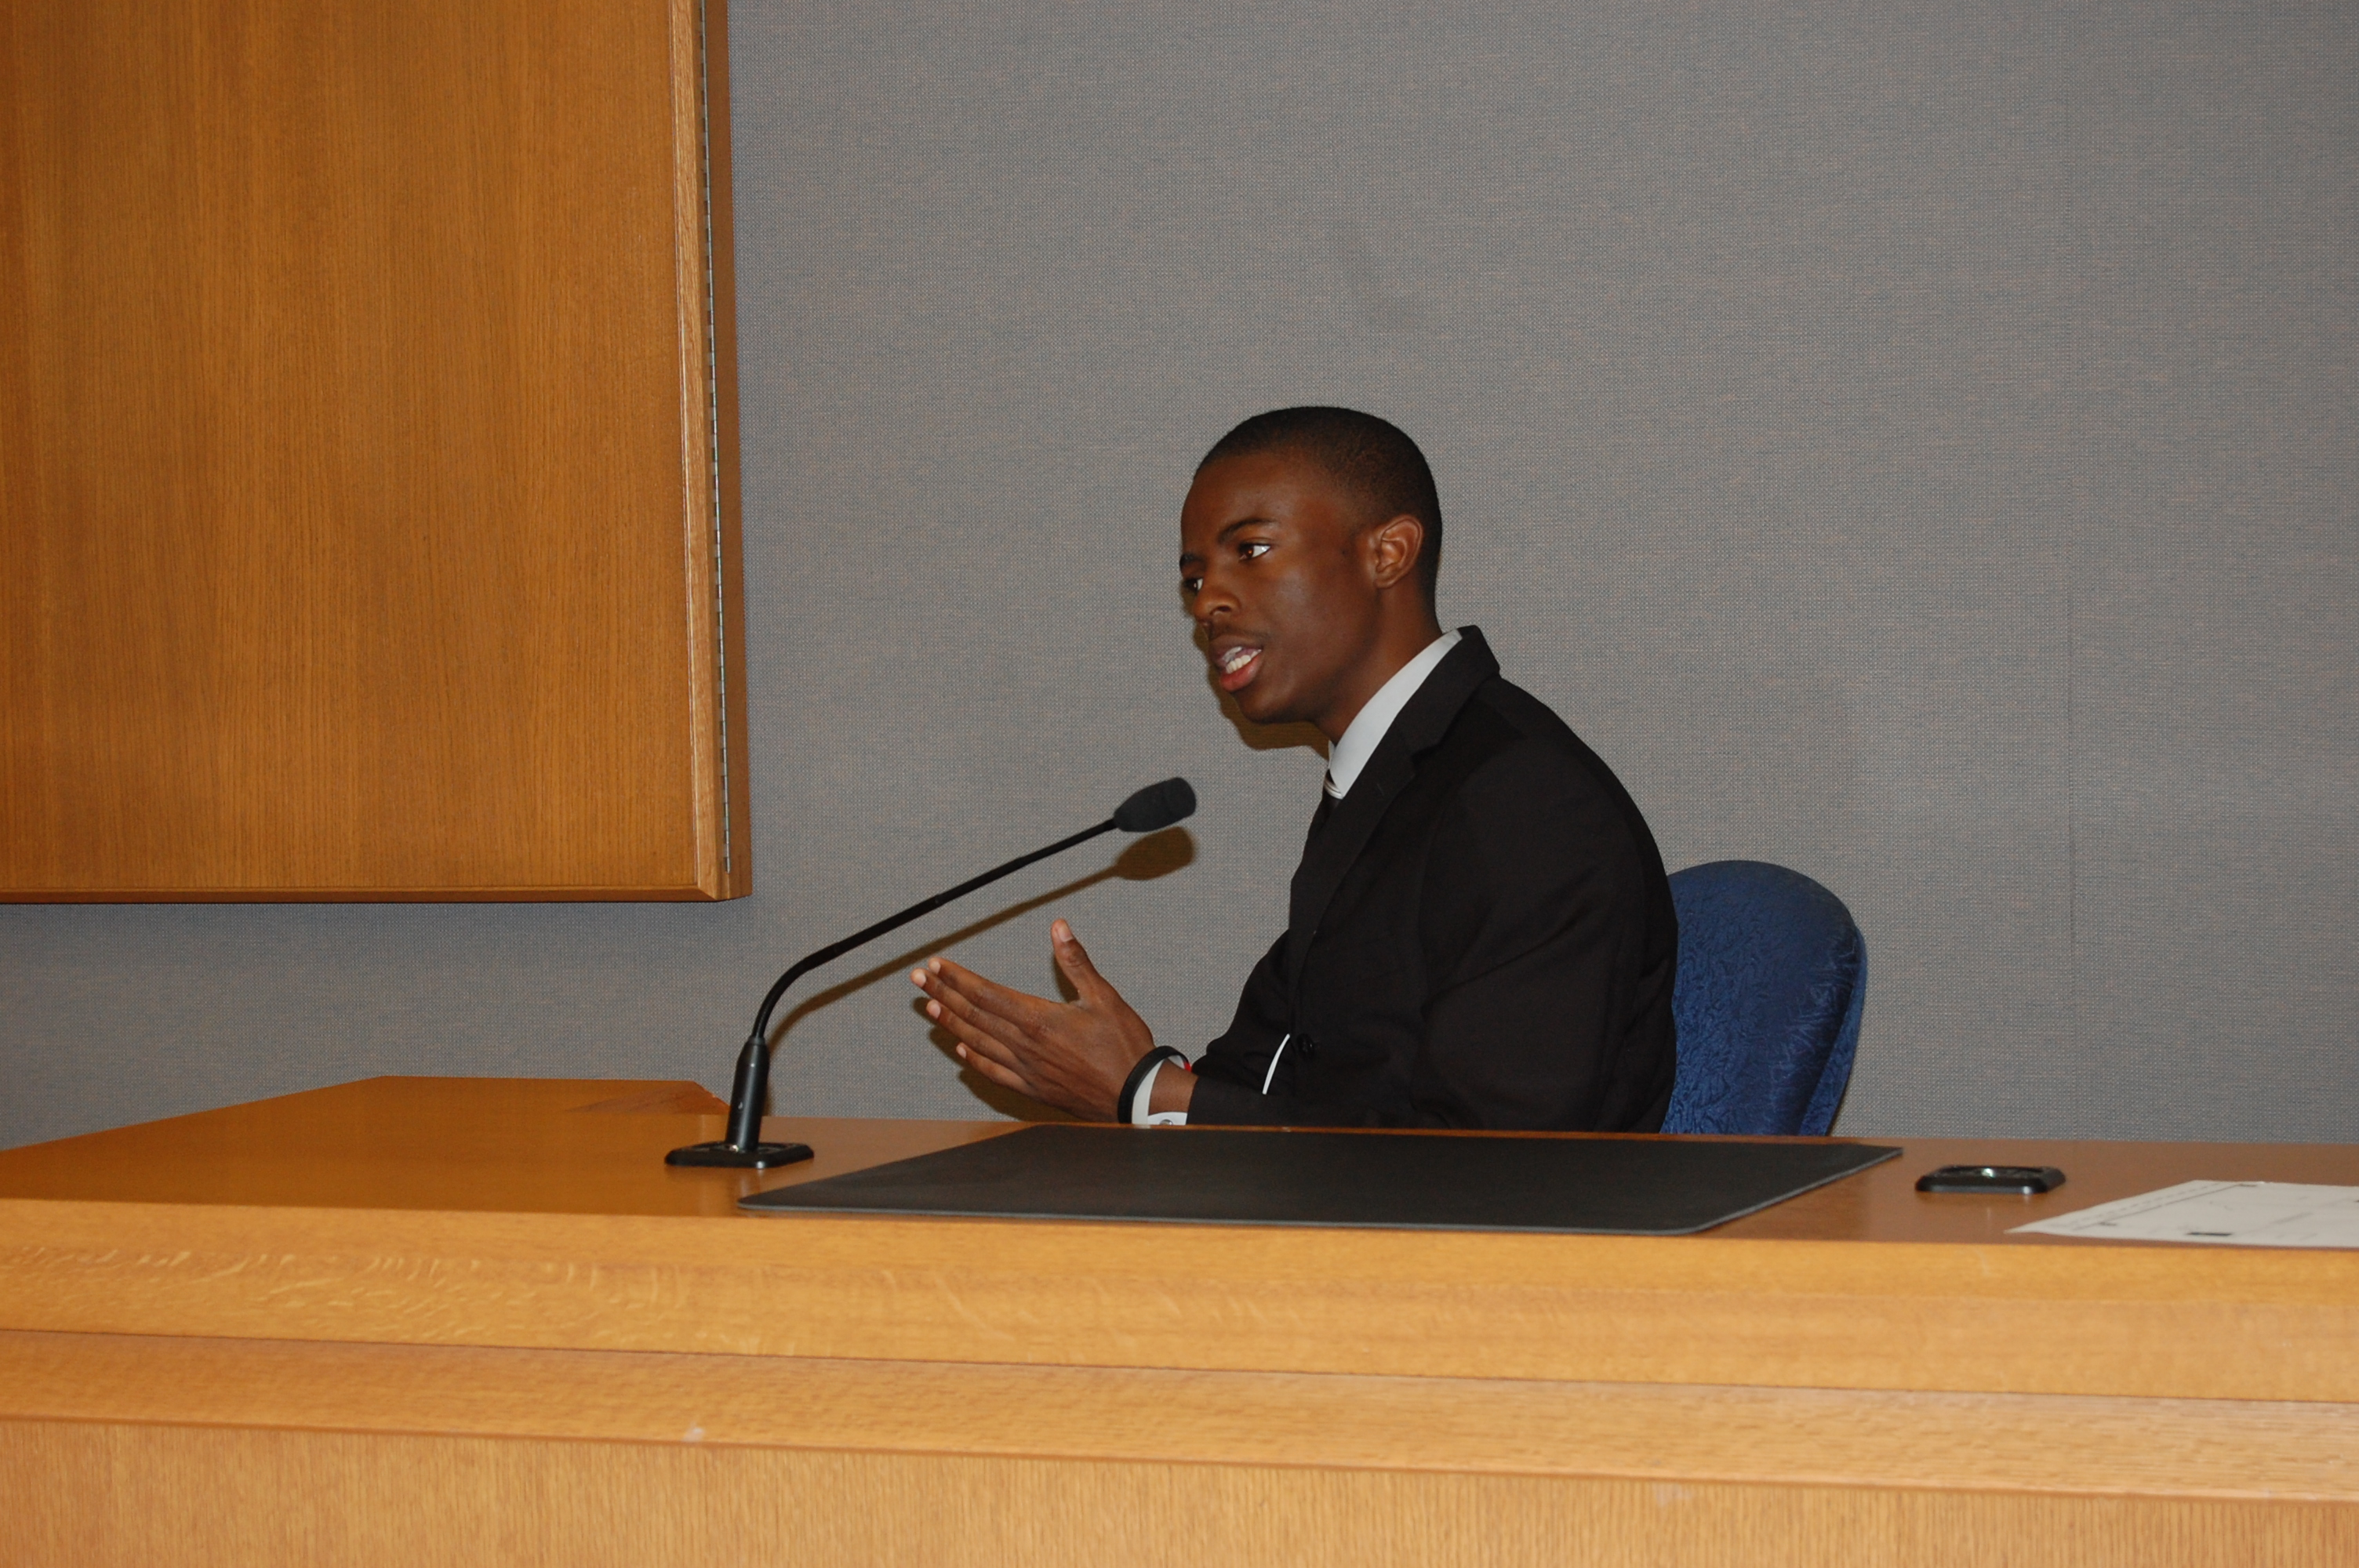 Senior team member Kenny Cochran portrayed witness Luiz Montague on March 17, during the mock trial state competition.